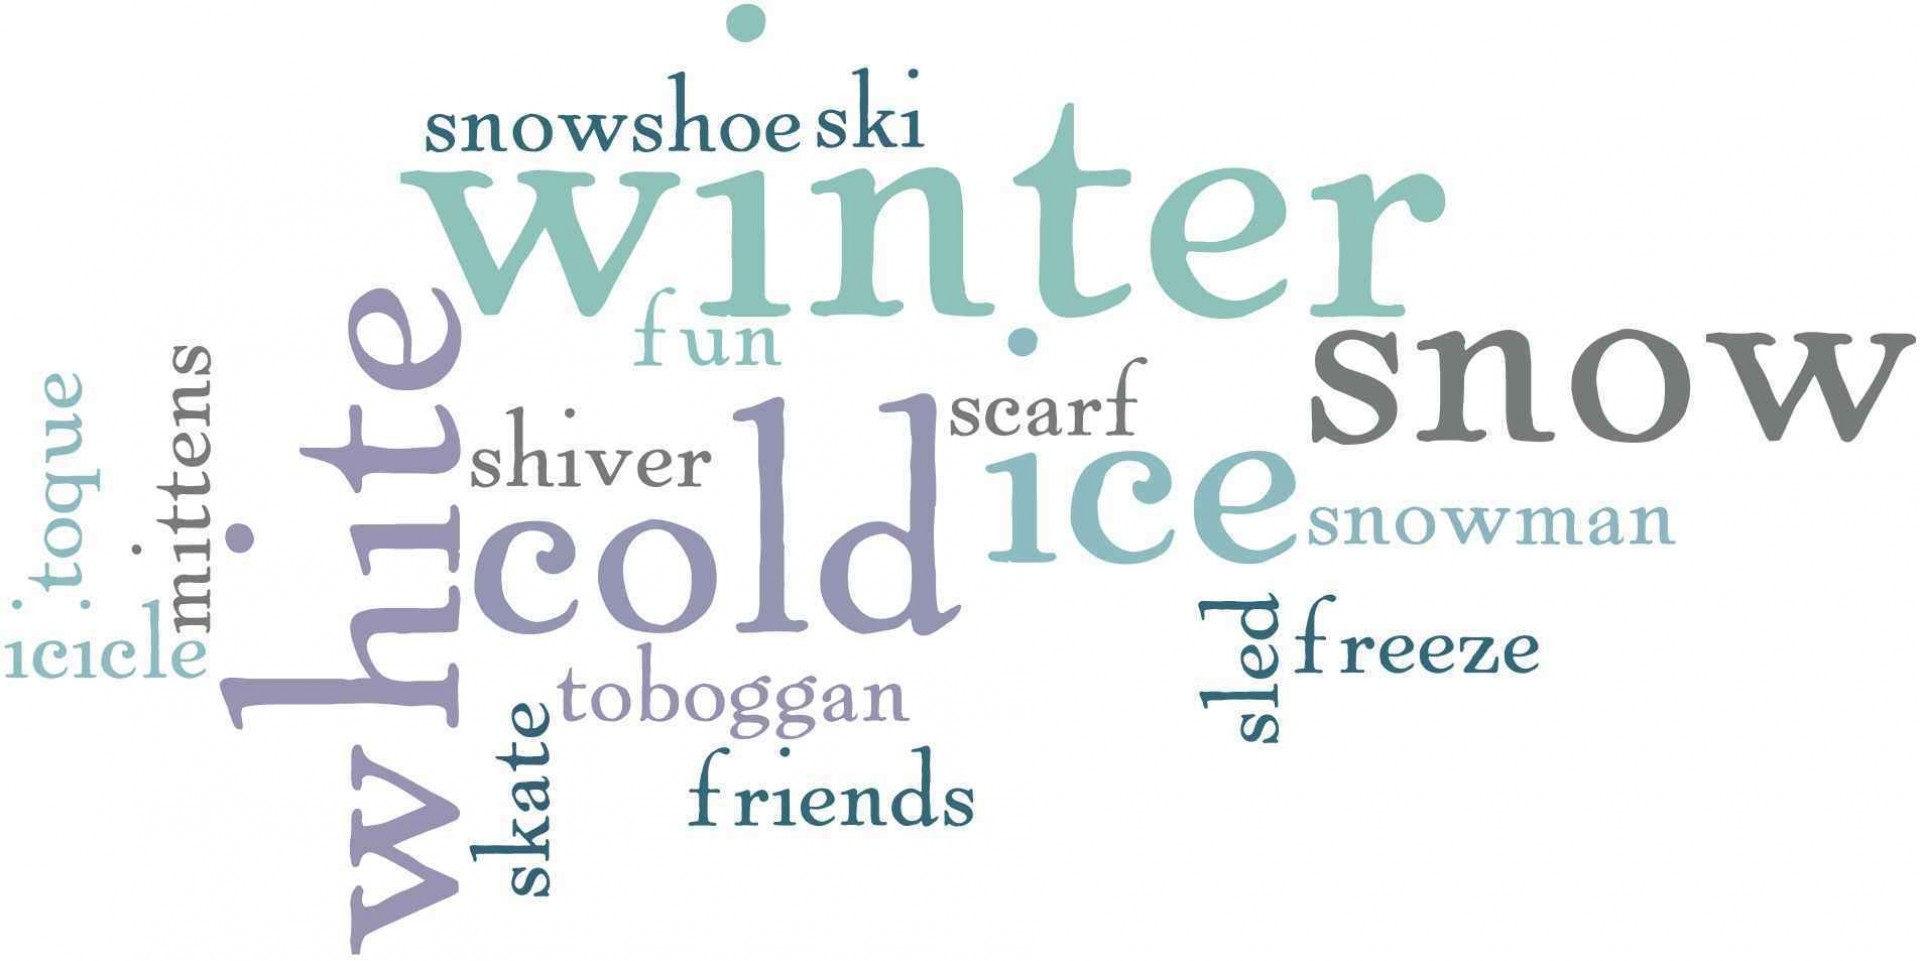 010 Essay Examplewordle Phenomenal Winter Topics Season For Class 7 In Urdu On 6 1920